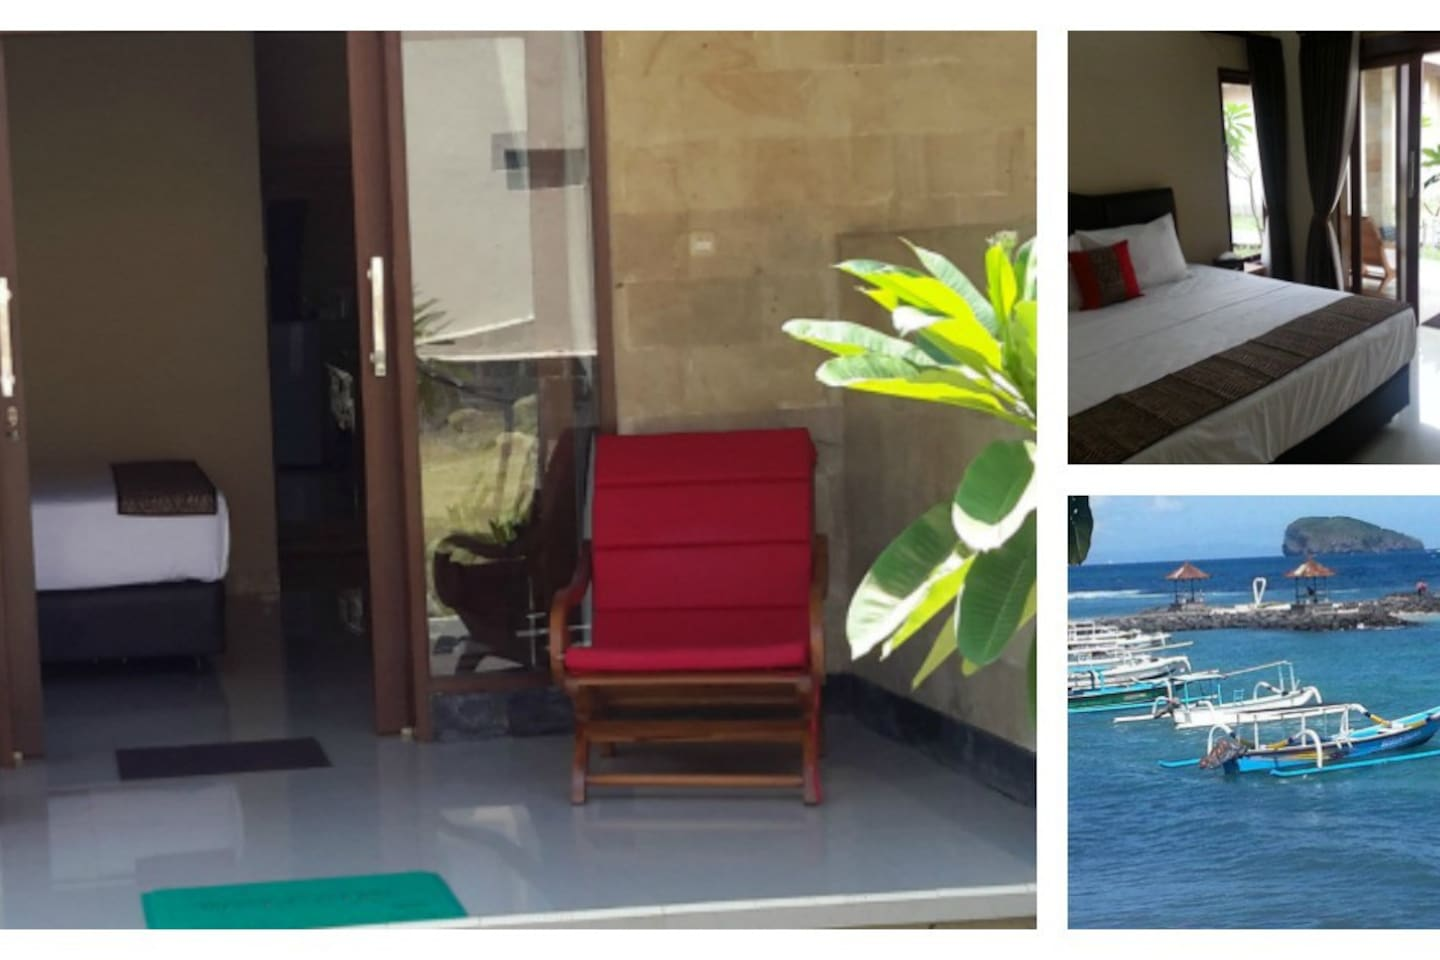 Magic View Bungalows situated on the Ocean side of Candidasa.  Beautiful modern clean rooms with Magical Views.  Garden View and Ocean View rooms available.